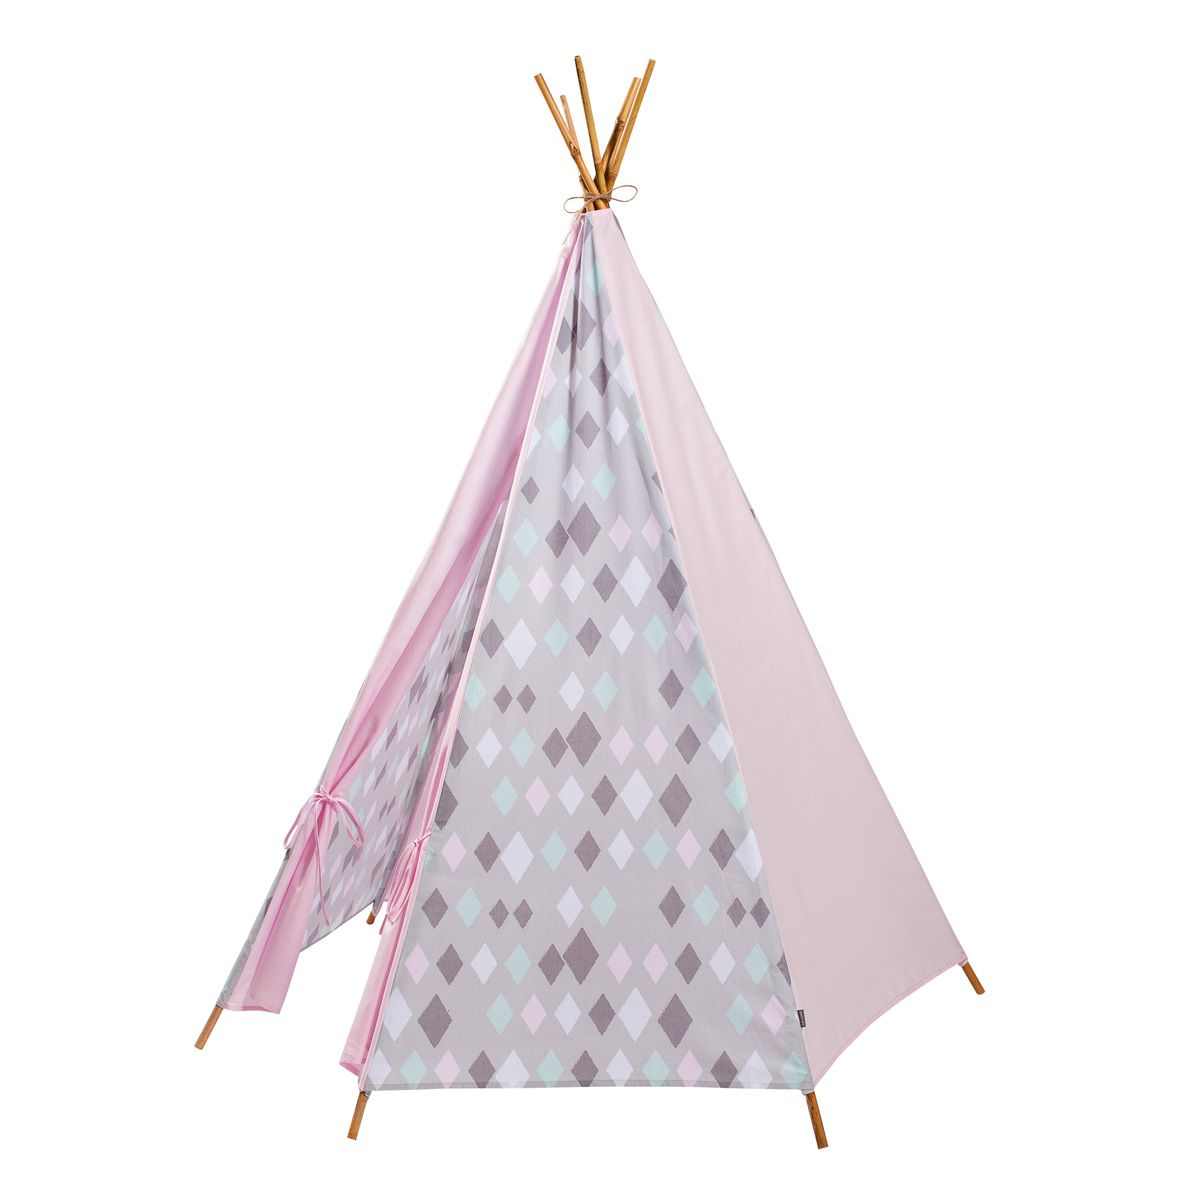 tipi zelt 39 wieber 39 rauten rosa von kidsdepot kaufen bei little roomers. Black Bedroom Furniture Sets. Home Design Ideas